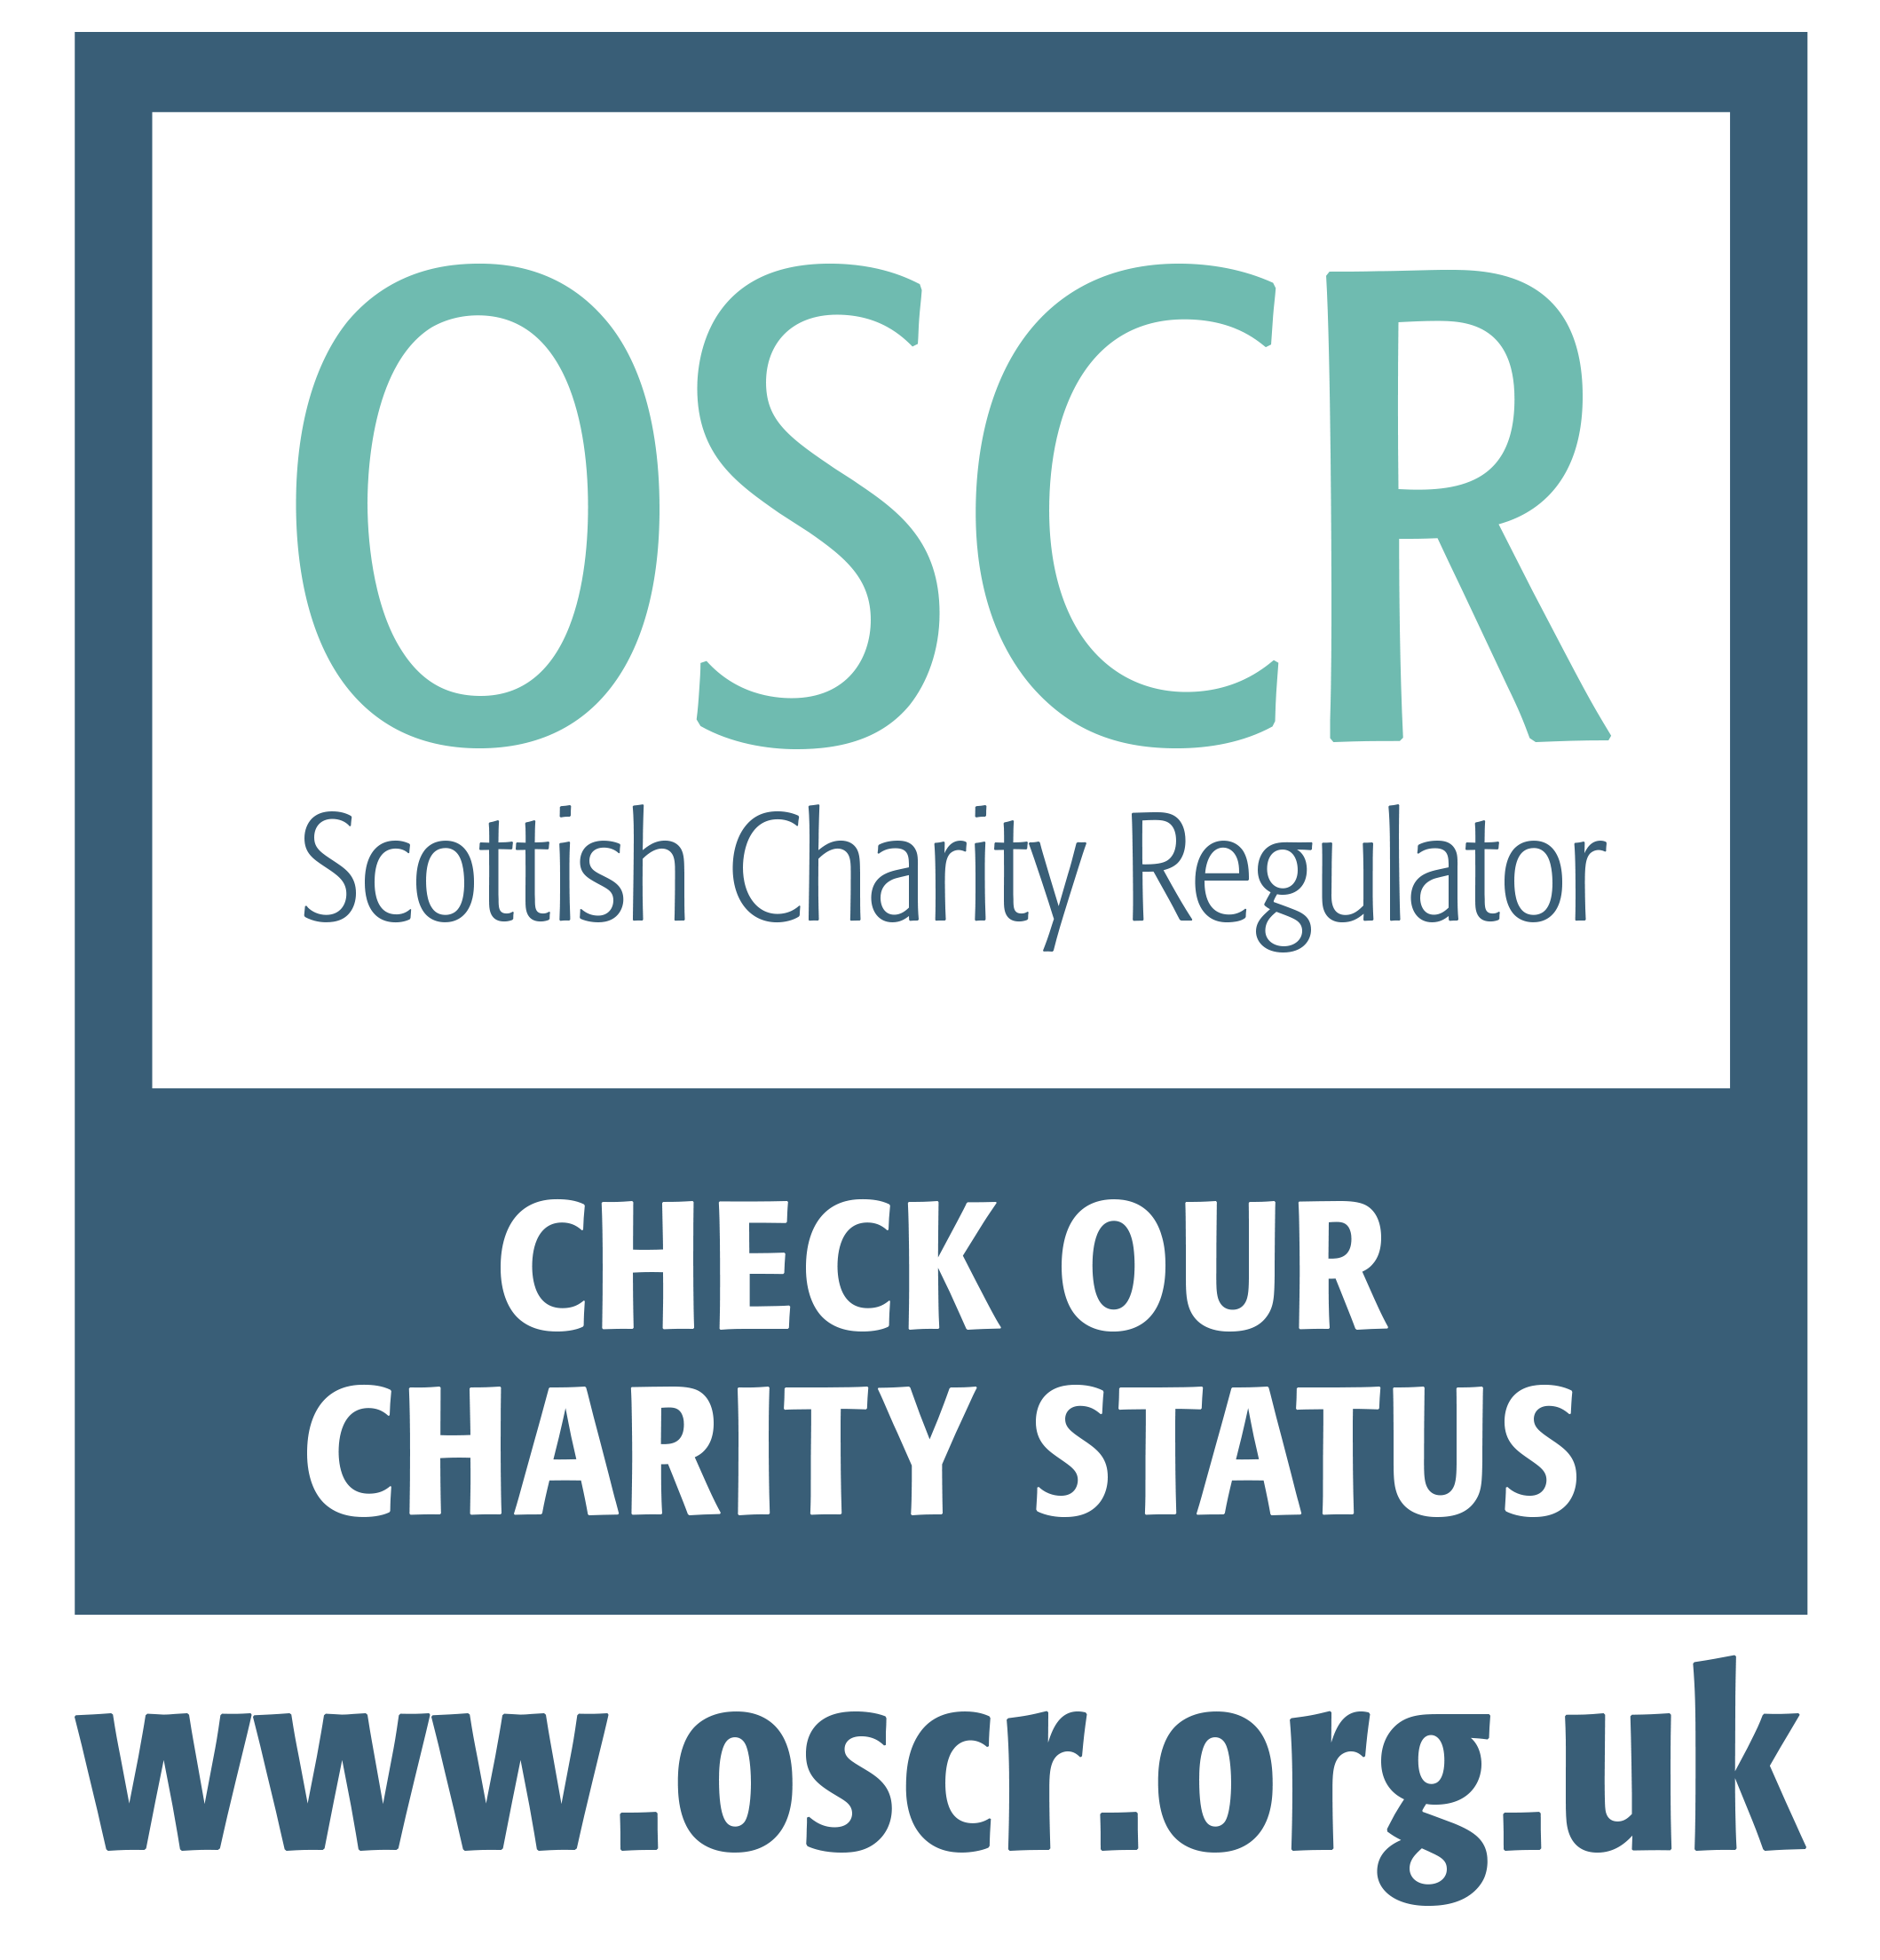 Registered Charity - click to see more